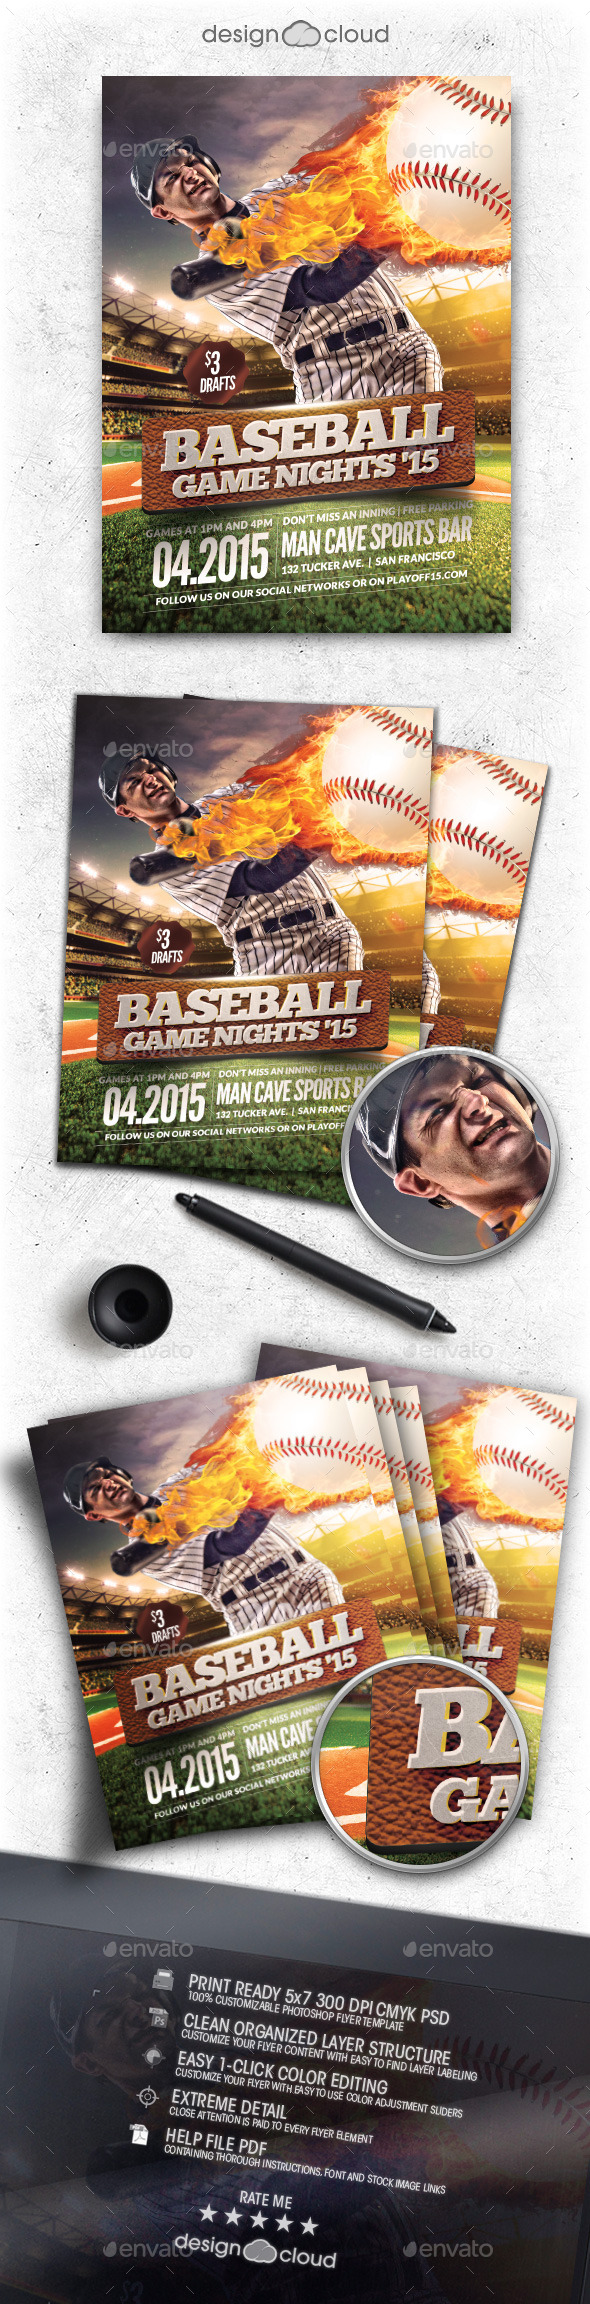 Baseball Game Nights Flyer Template - Sports Events